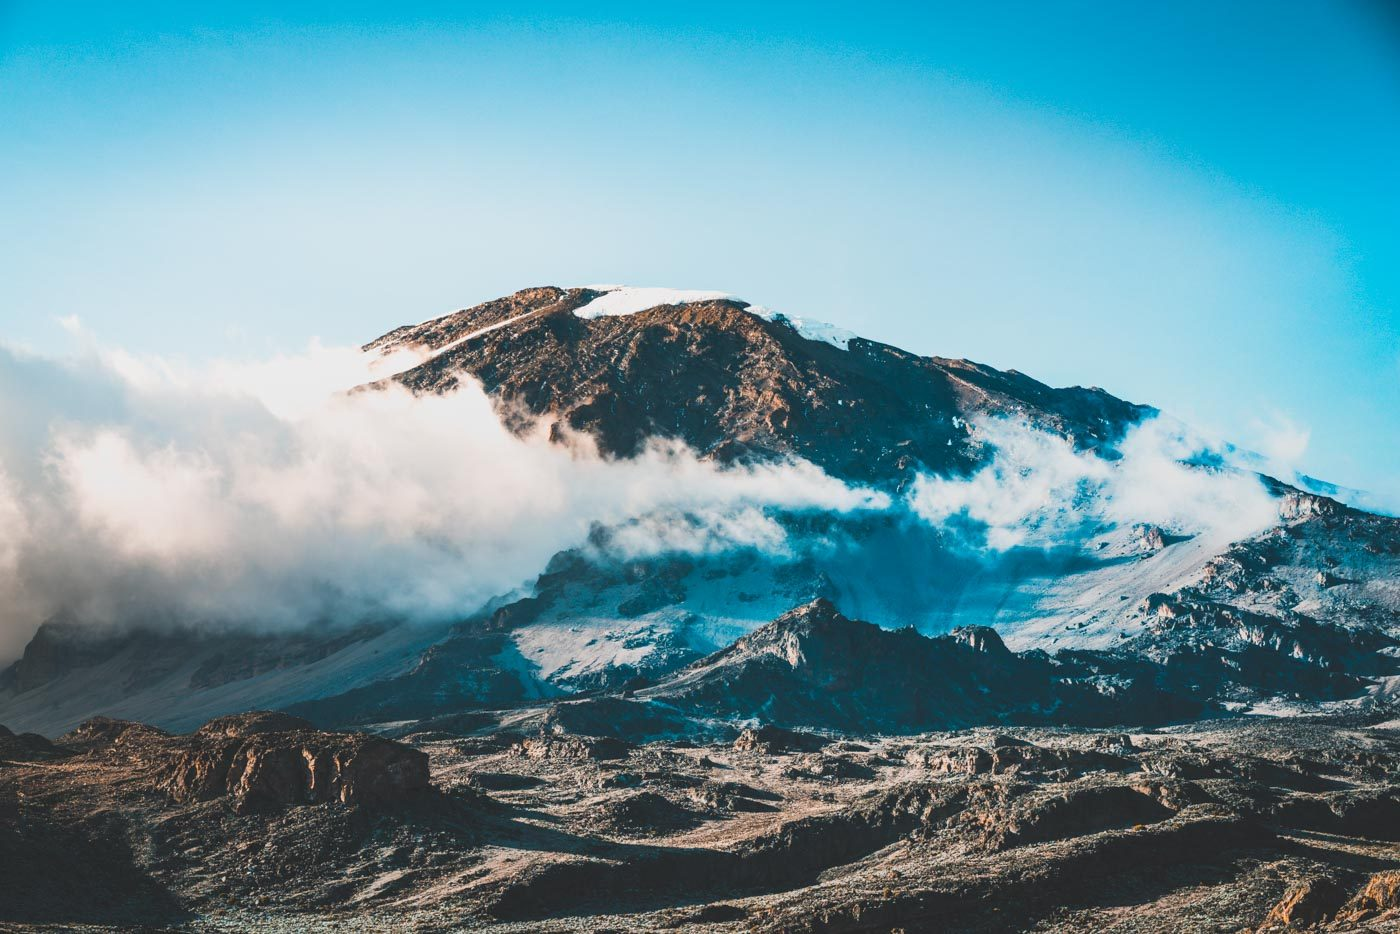 Mt Kilimanjaro, the highest peak in Africa and a pride of Tanzania